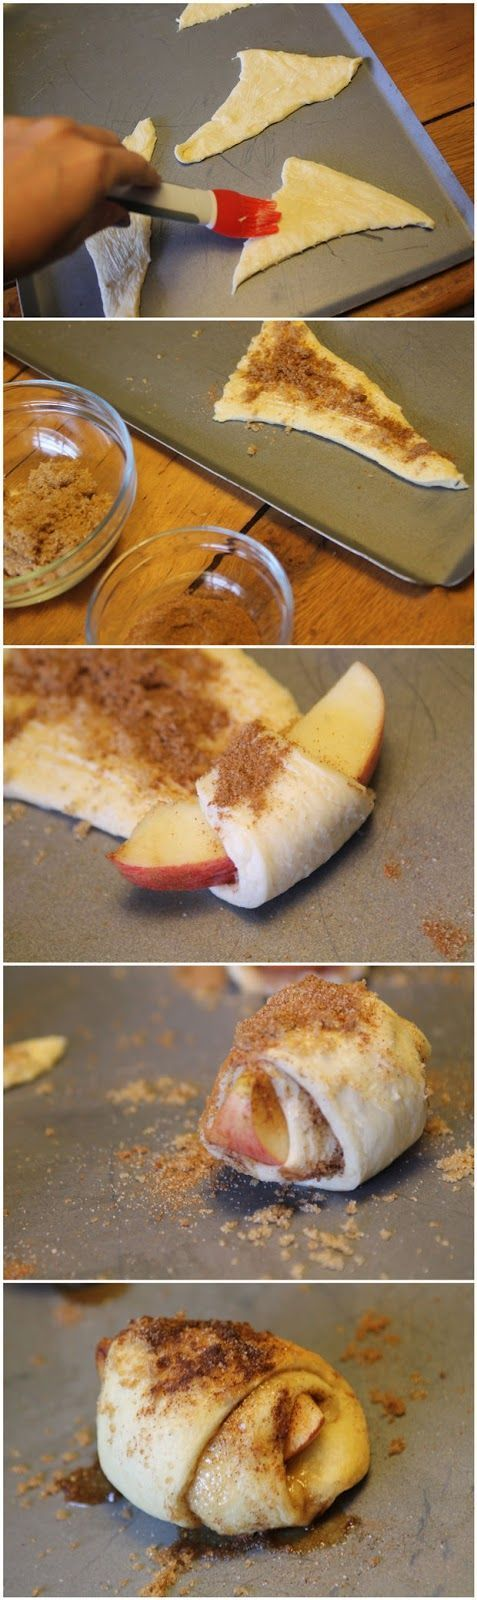 Bite Size Apple Pies would be another fun mini dessert--perfect for entertaining in small spaces. I love fall food!!